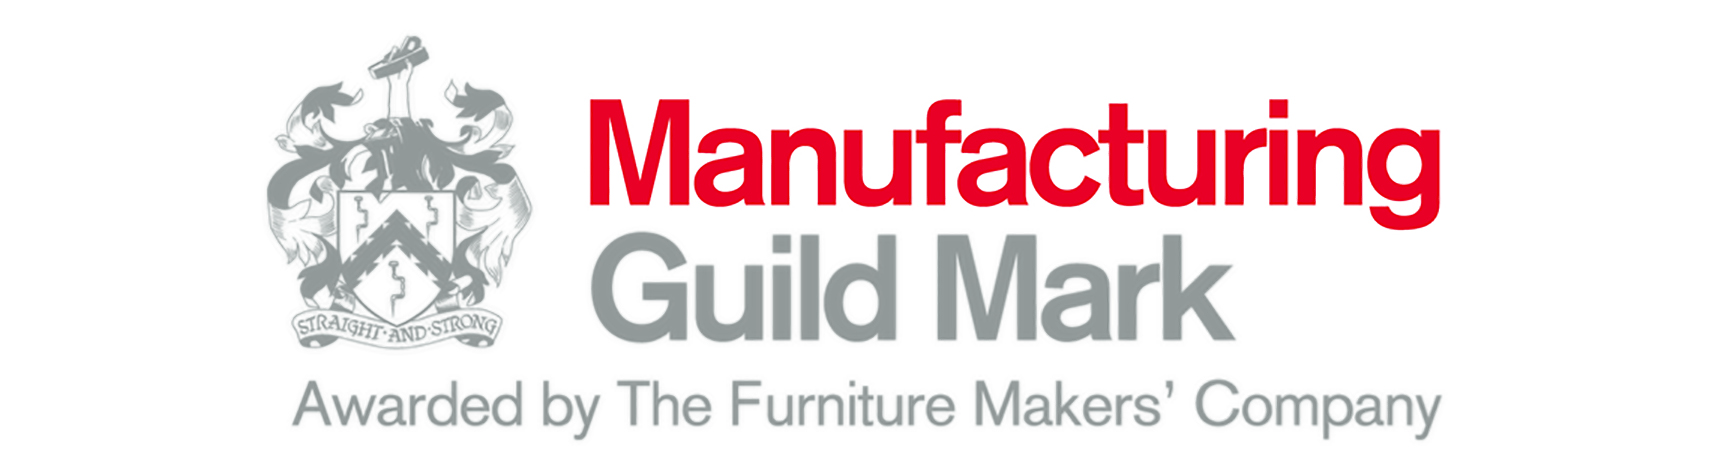 Biesse to host The Furniture Makers' Company Manufacturing Guild Mark open day: Photo 1